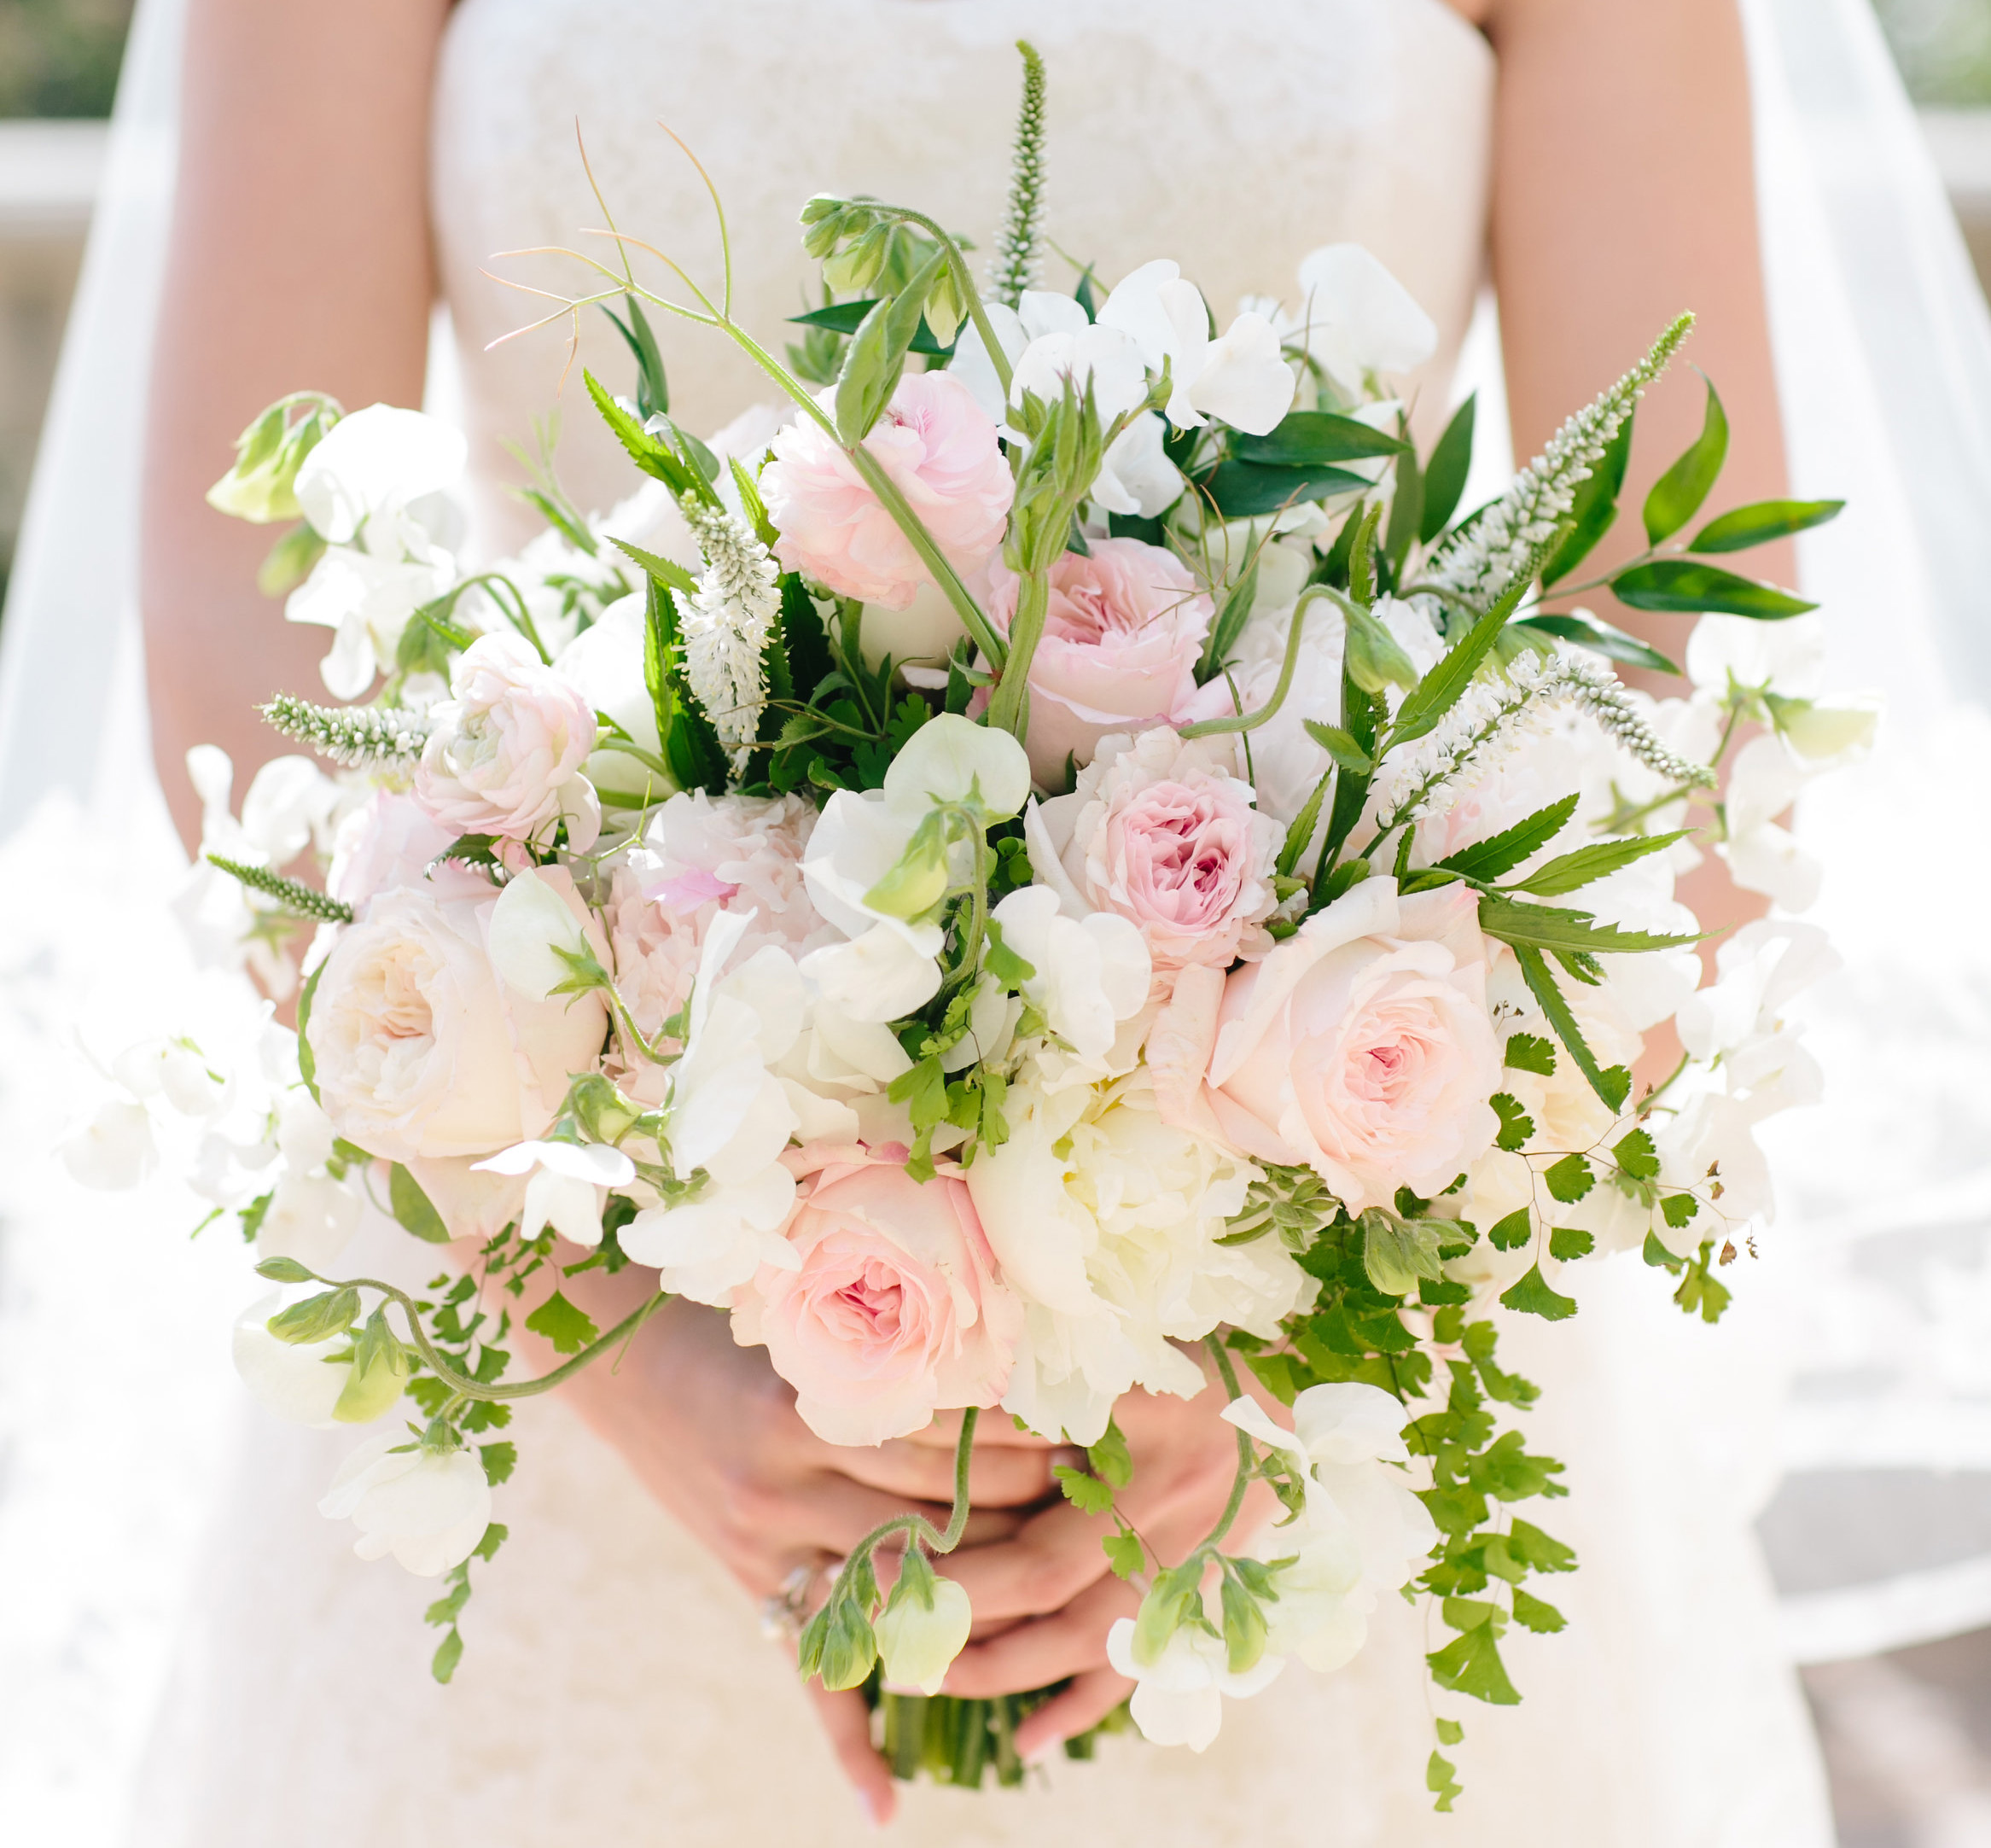 Flower Wedding Bouquet: 15 Bridal Bouquets In Valentine-Inspired Shades